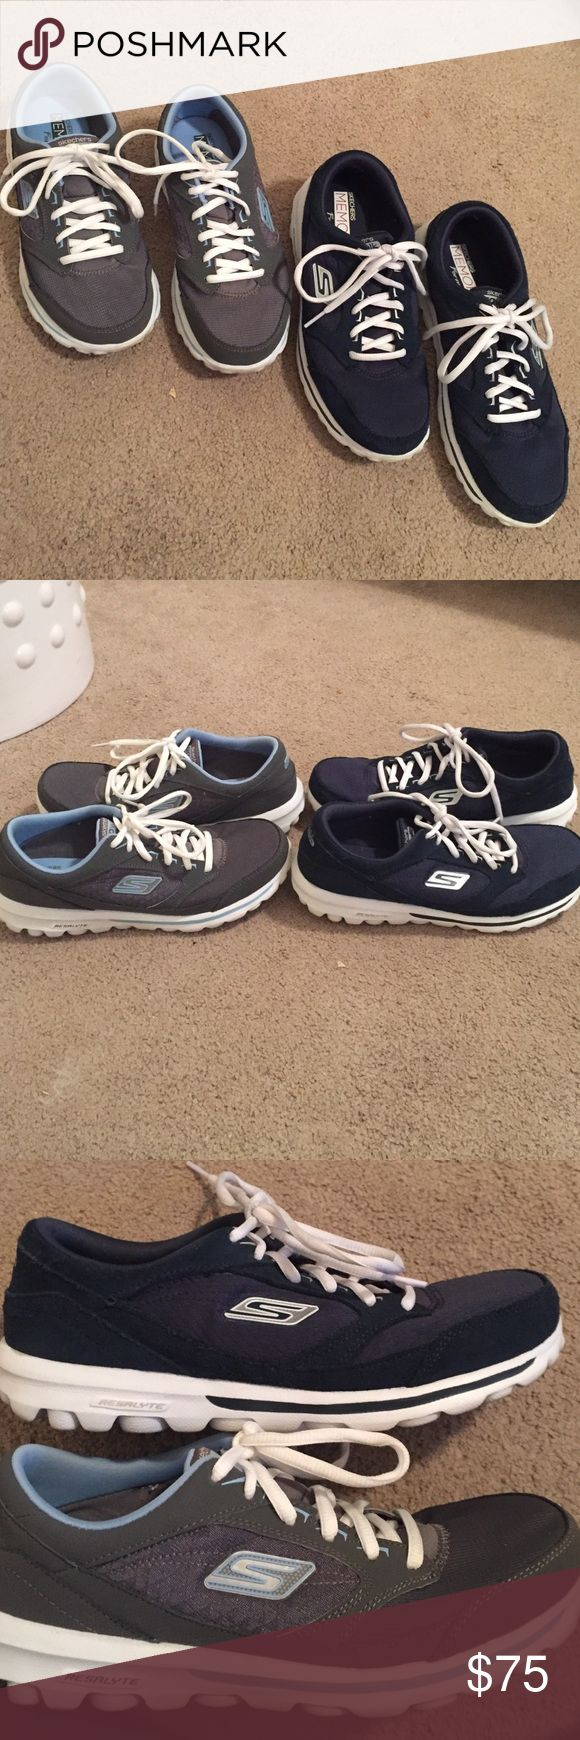 Bundle of Skechers go walk memory form fit shoes Bundle of Skechers go walk memory form fit tennis shoes. Both in excellent condition. Navy blue/white and light blue/white Skechers Shoes Sneakers